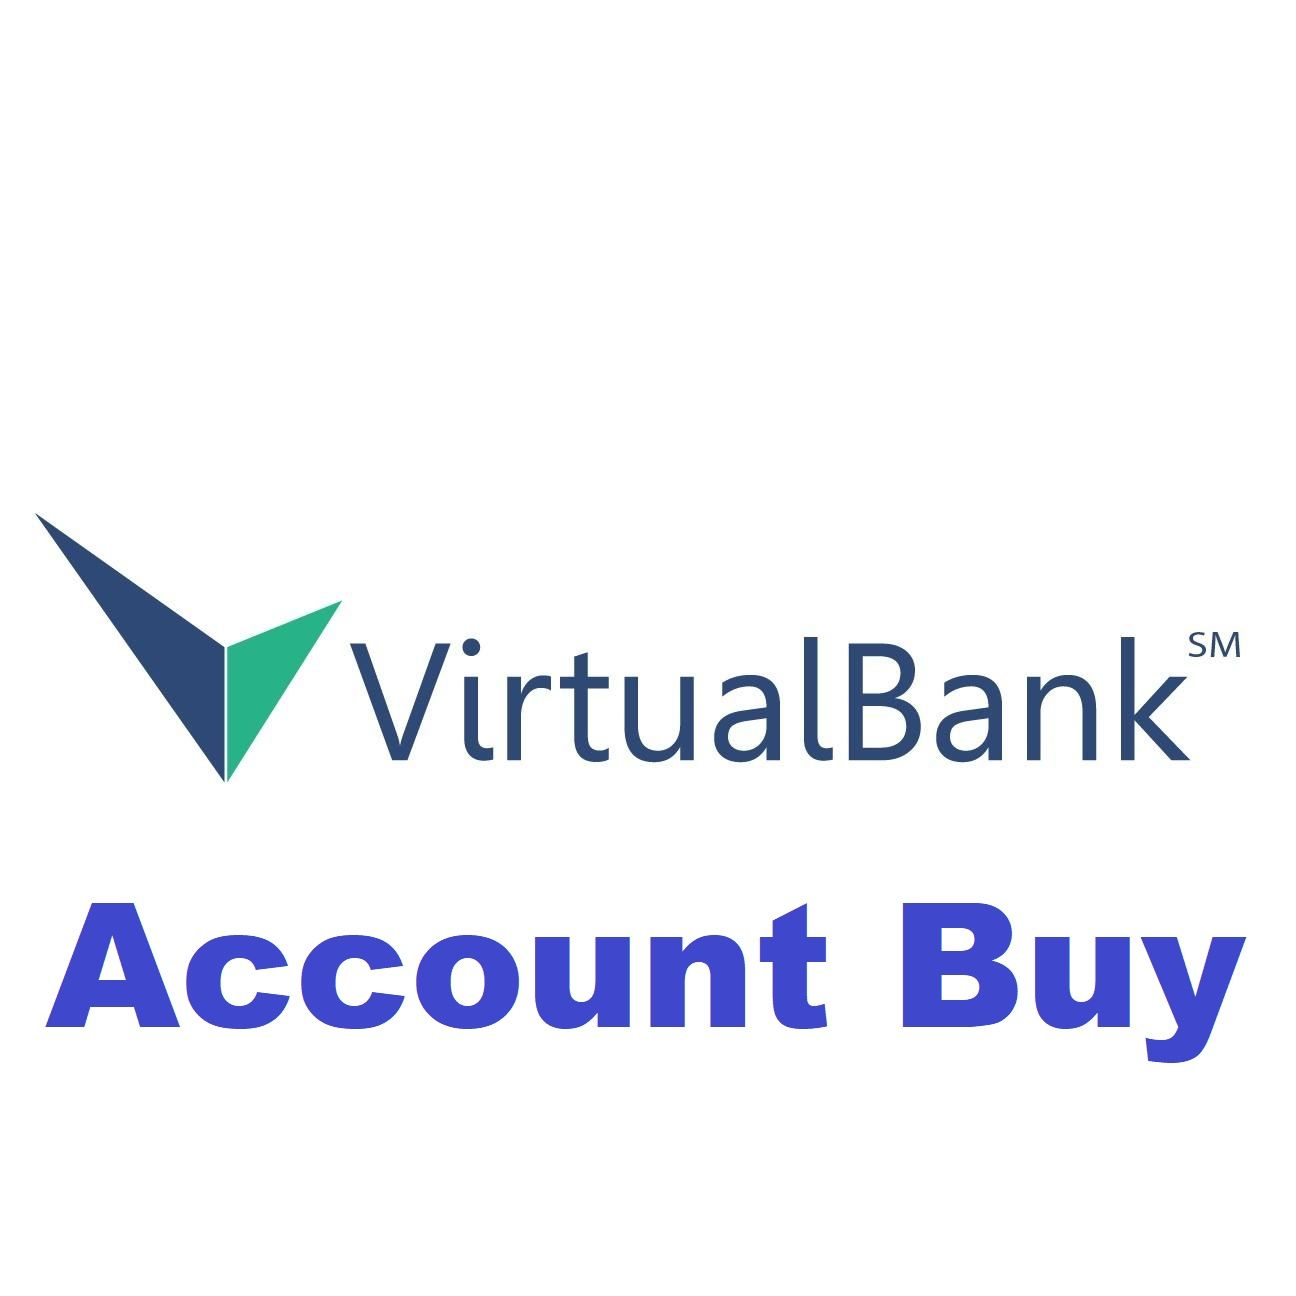 Virtual Bank Account For Paypal Verify or Any Company Verify  You